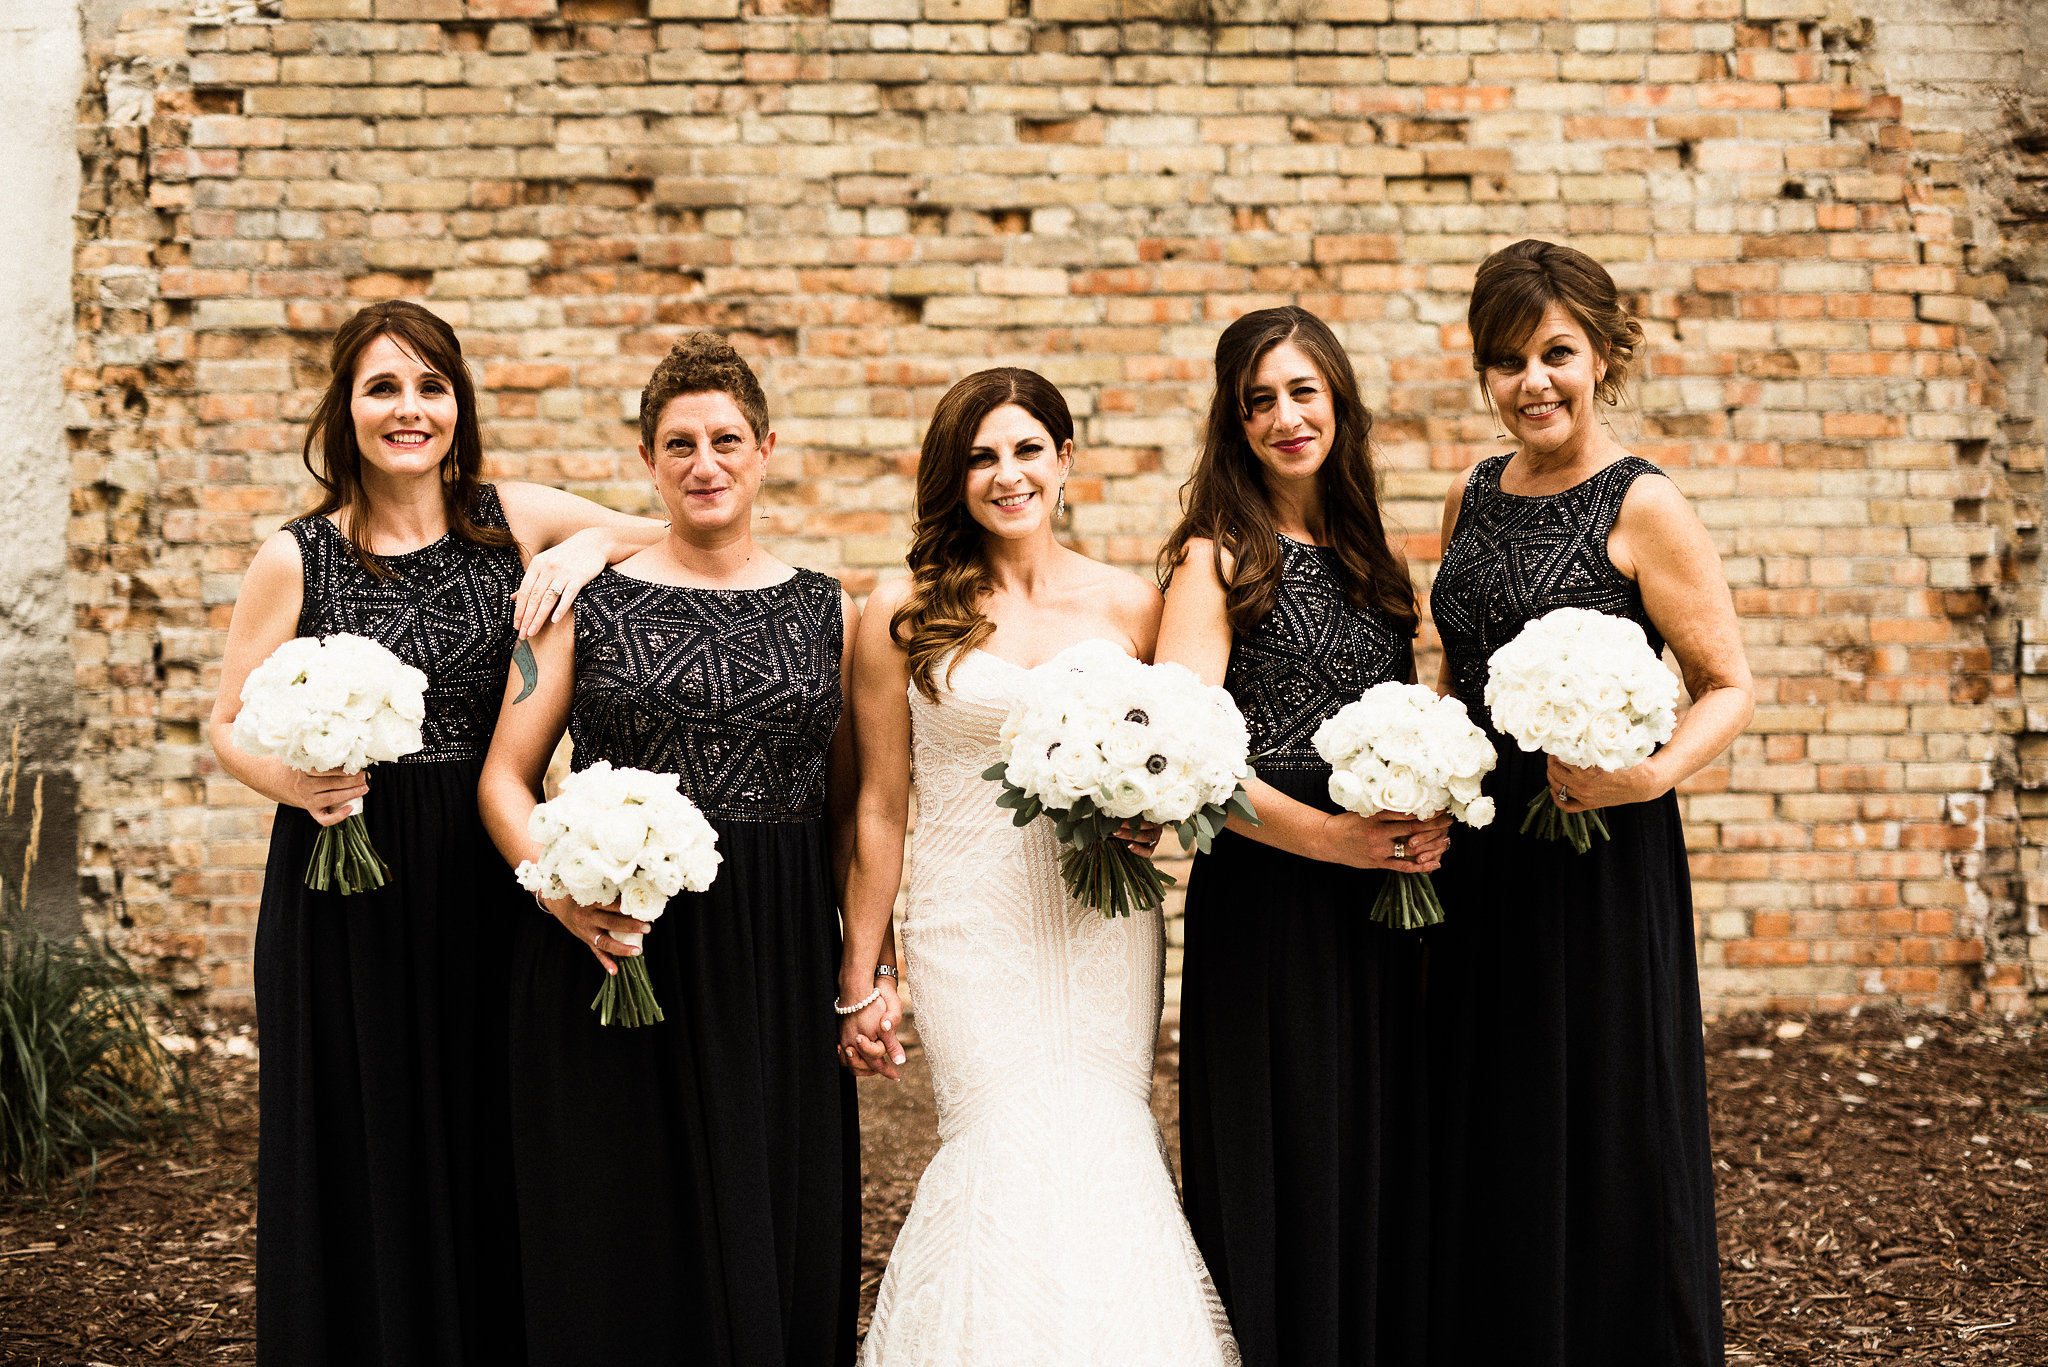 bride and her bridesmaids hold white bouquets